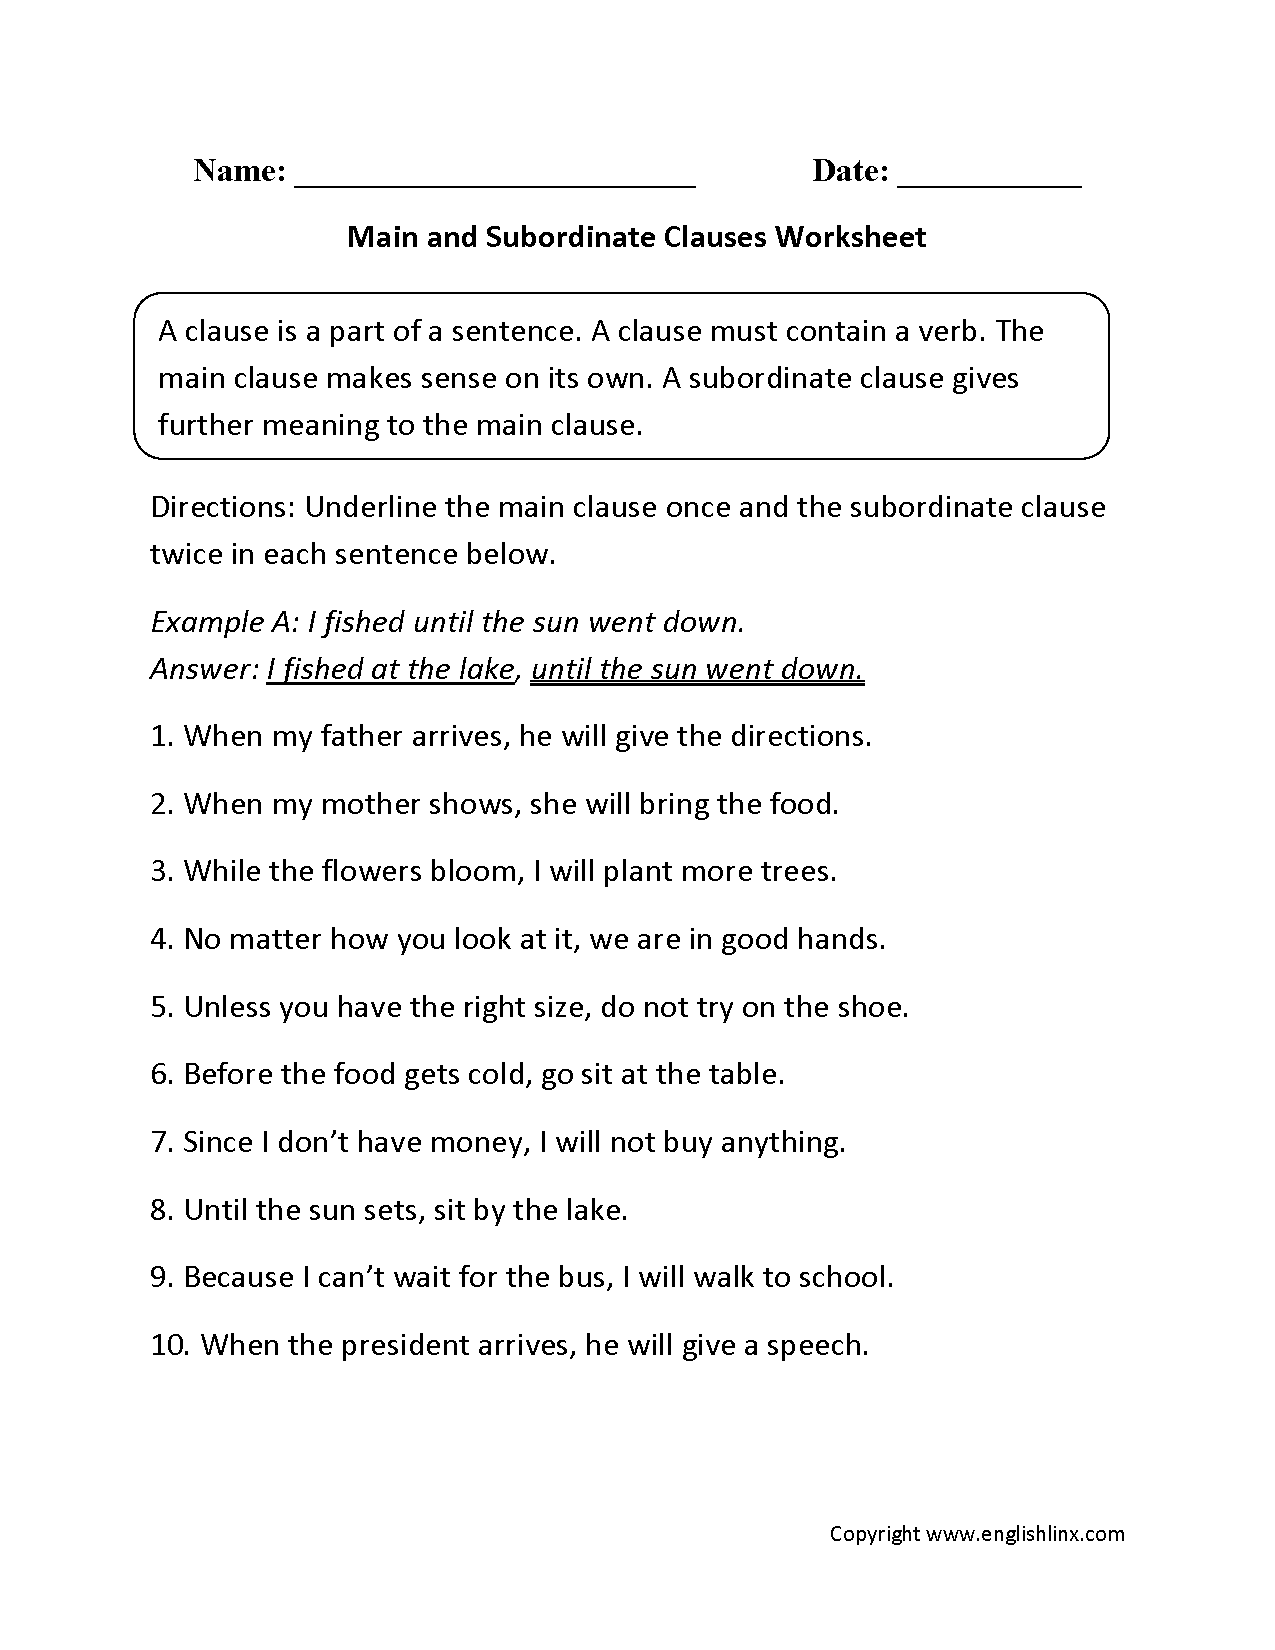 Worksheets Independent And Subordinate Clauses Worksheet englishlinx com clauses worksheets grades 6 8 worksheets